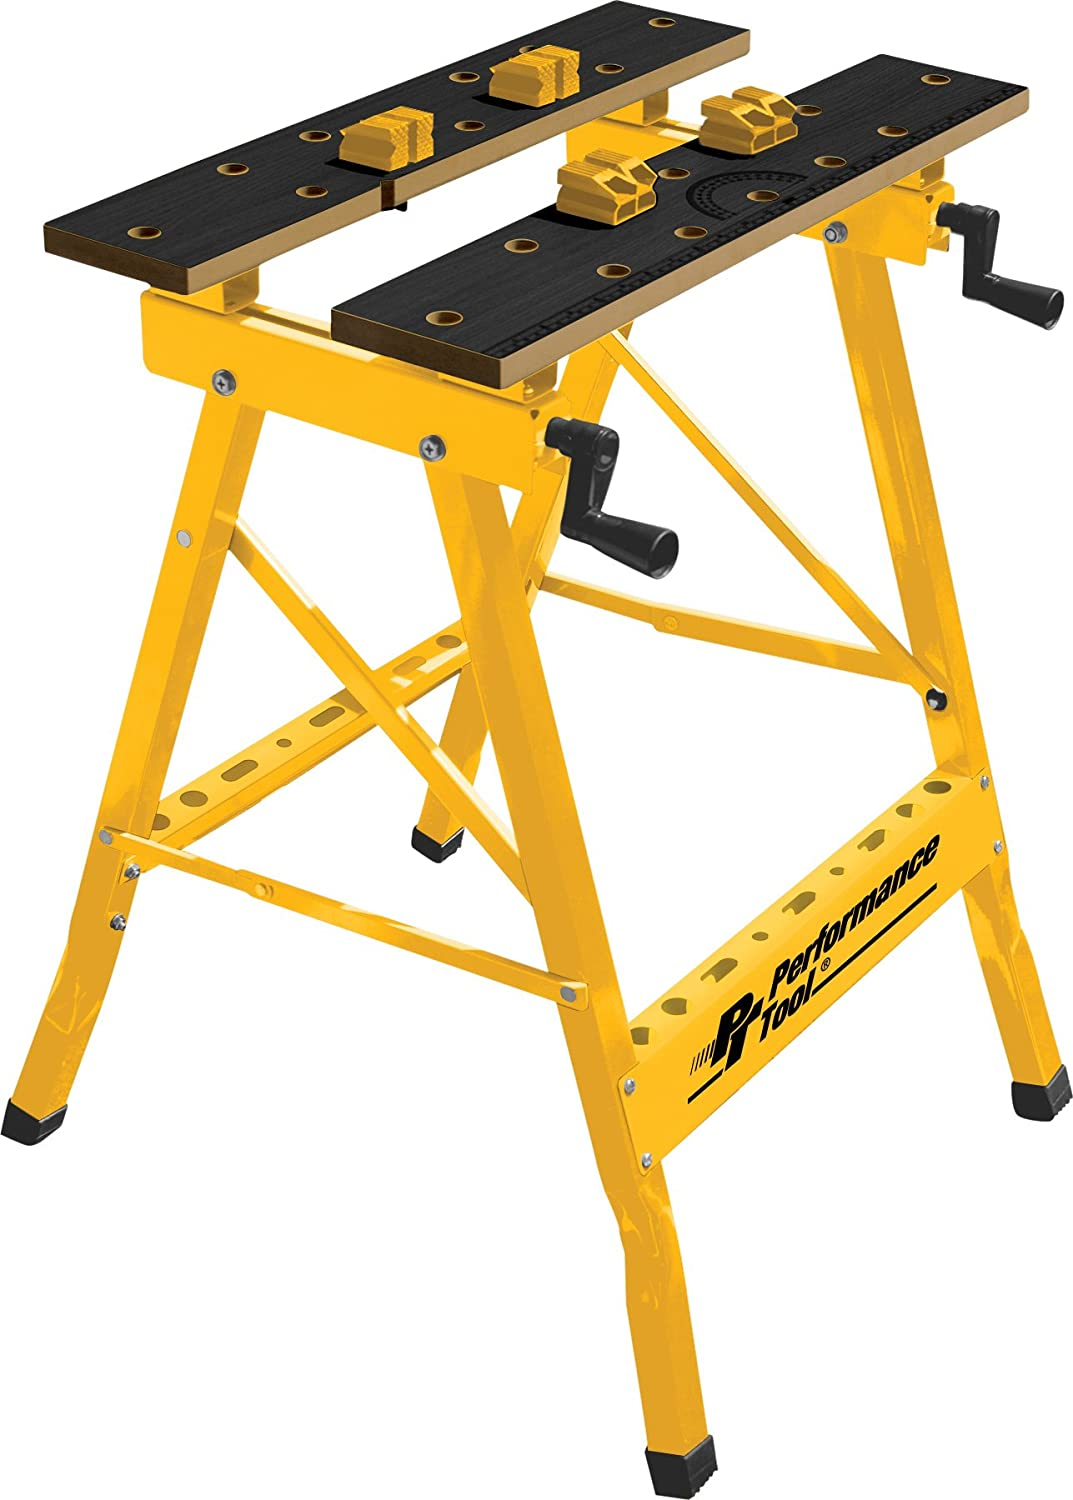 Multipurpose Workbench, 200 lb capacity Performance Tool